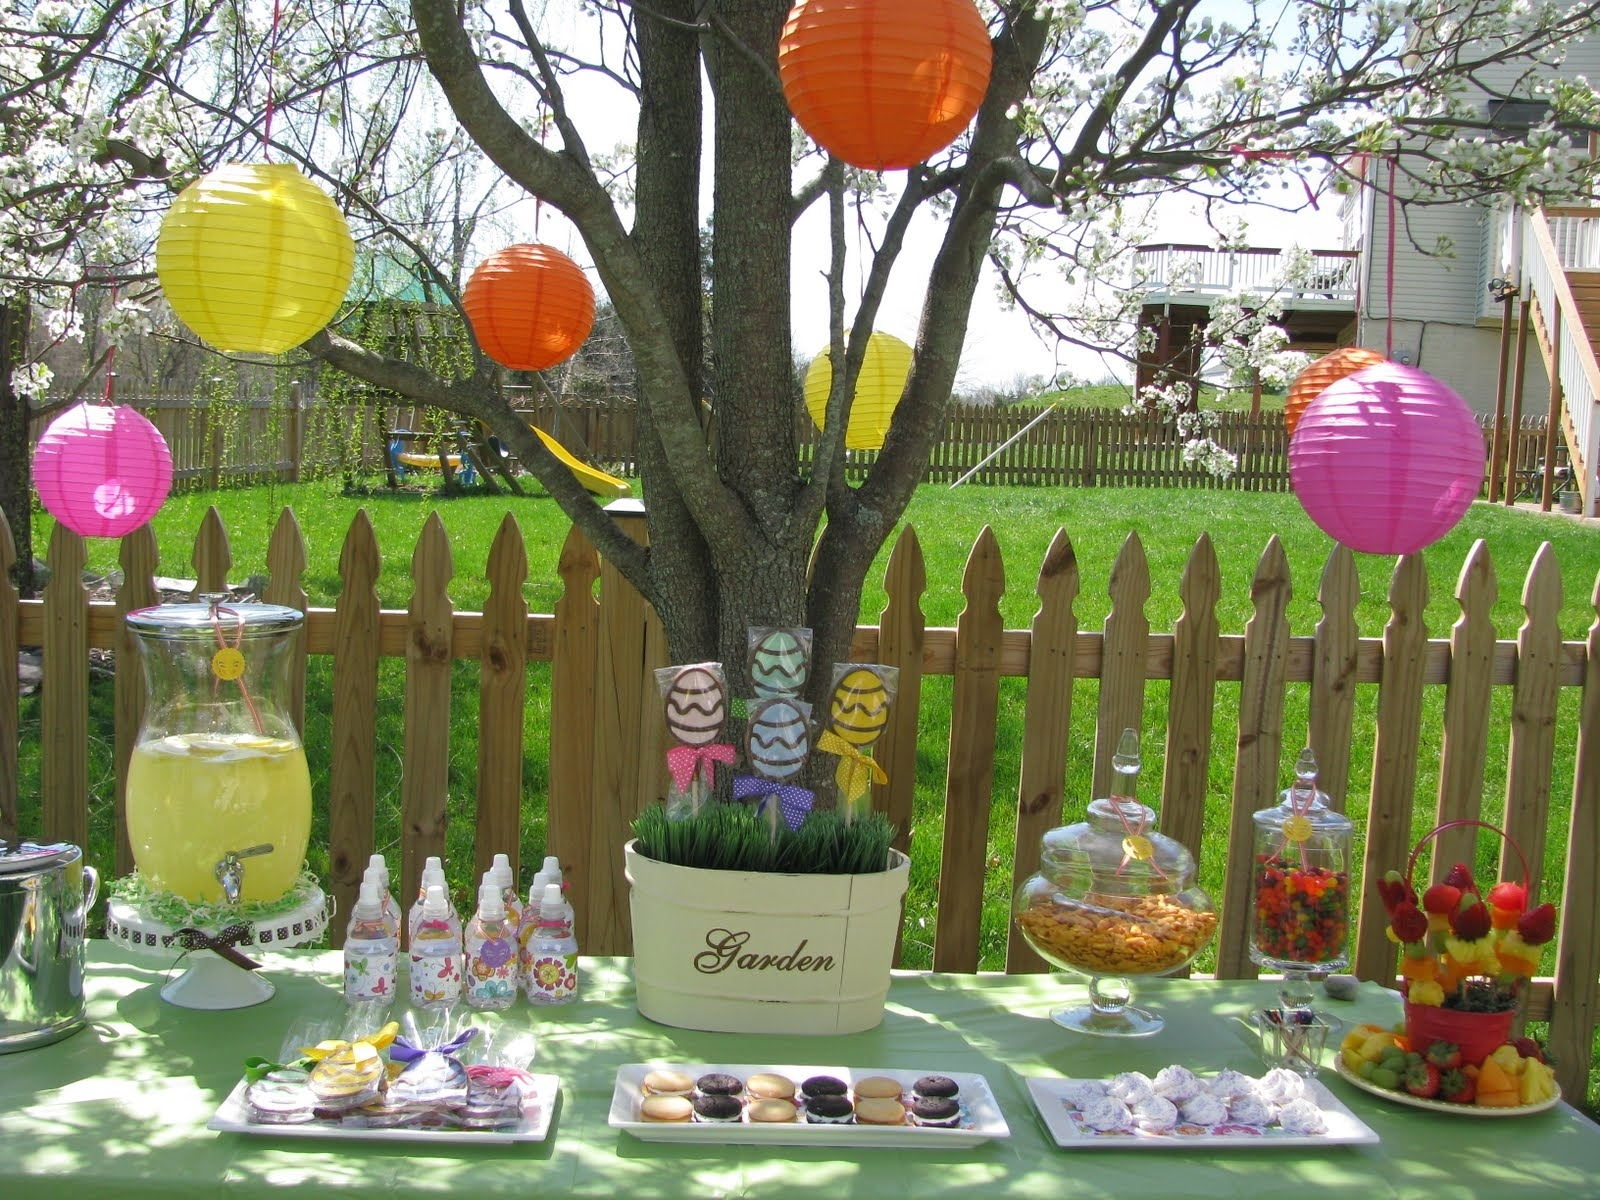 Captivating Outdoor Easter Dessert Table Decoration With Colorful throughout Colorful Outdoor Lanterns (Image 5 of 20)